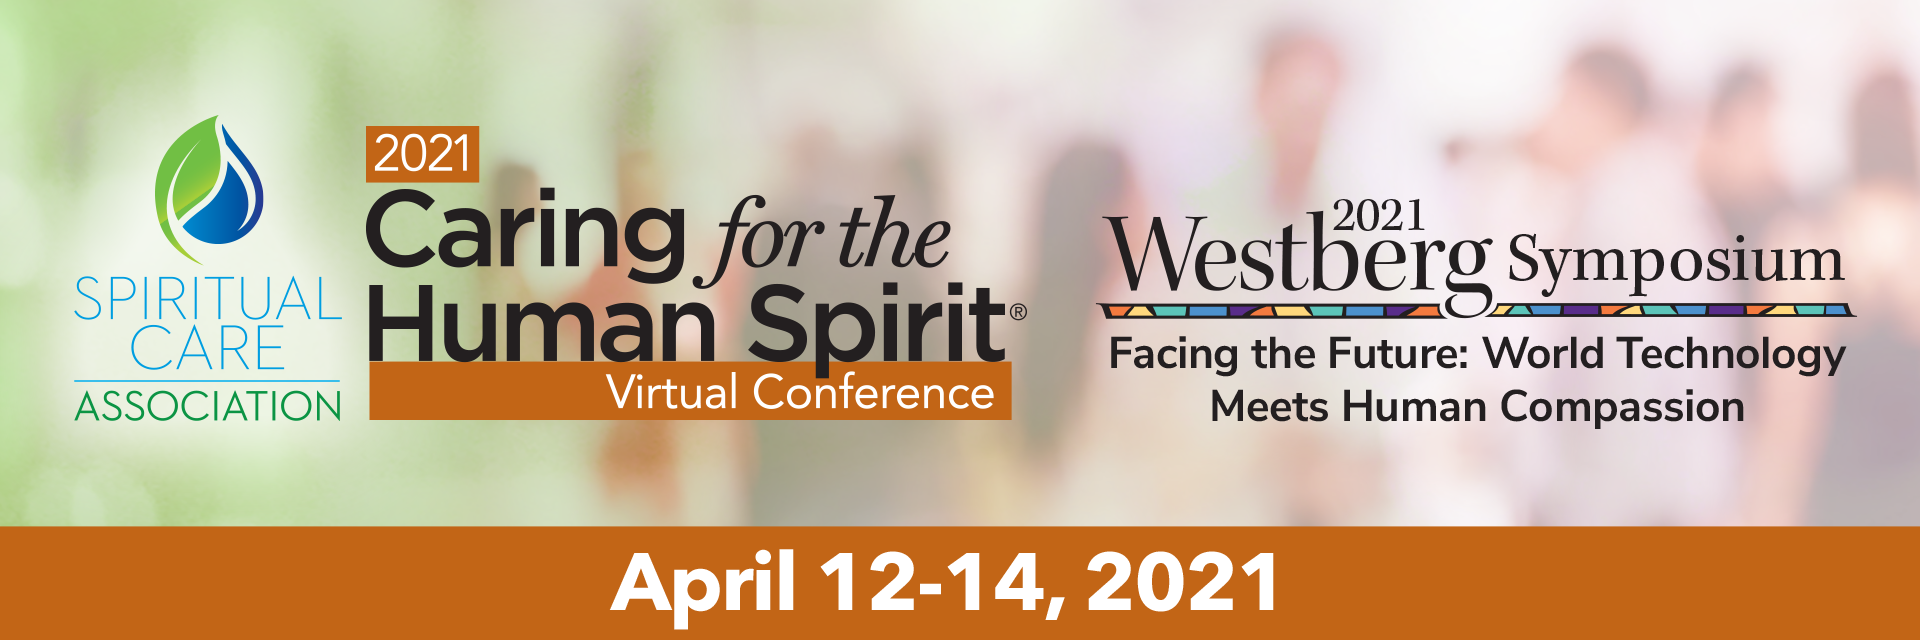 Caring to the Human Spirit Conference